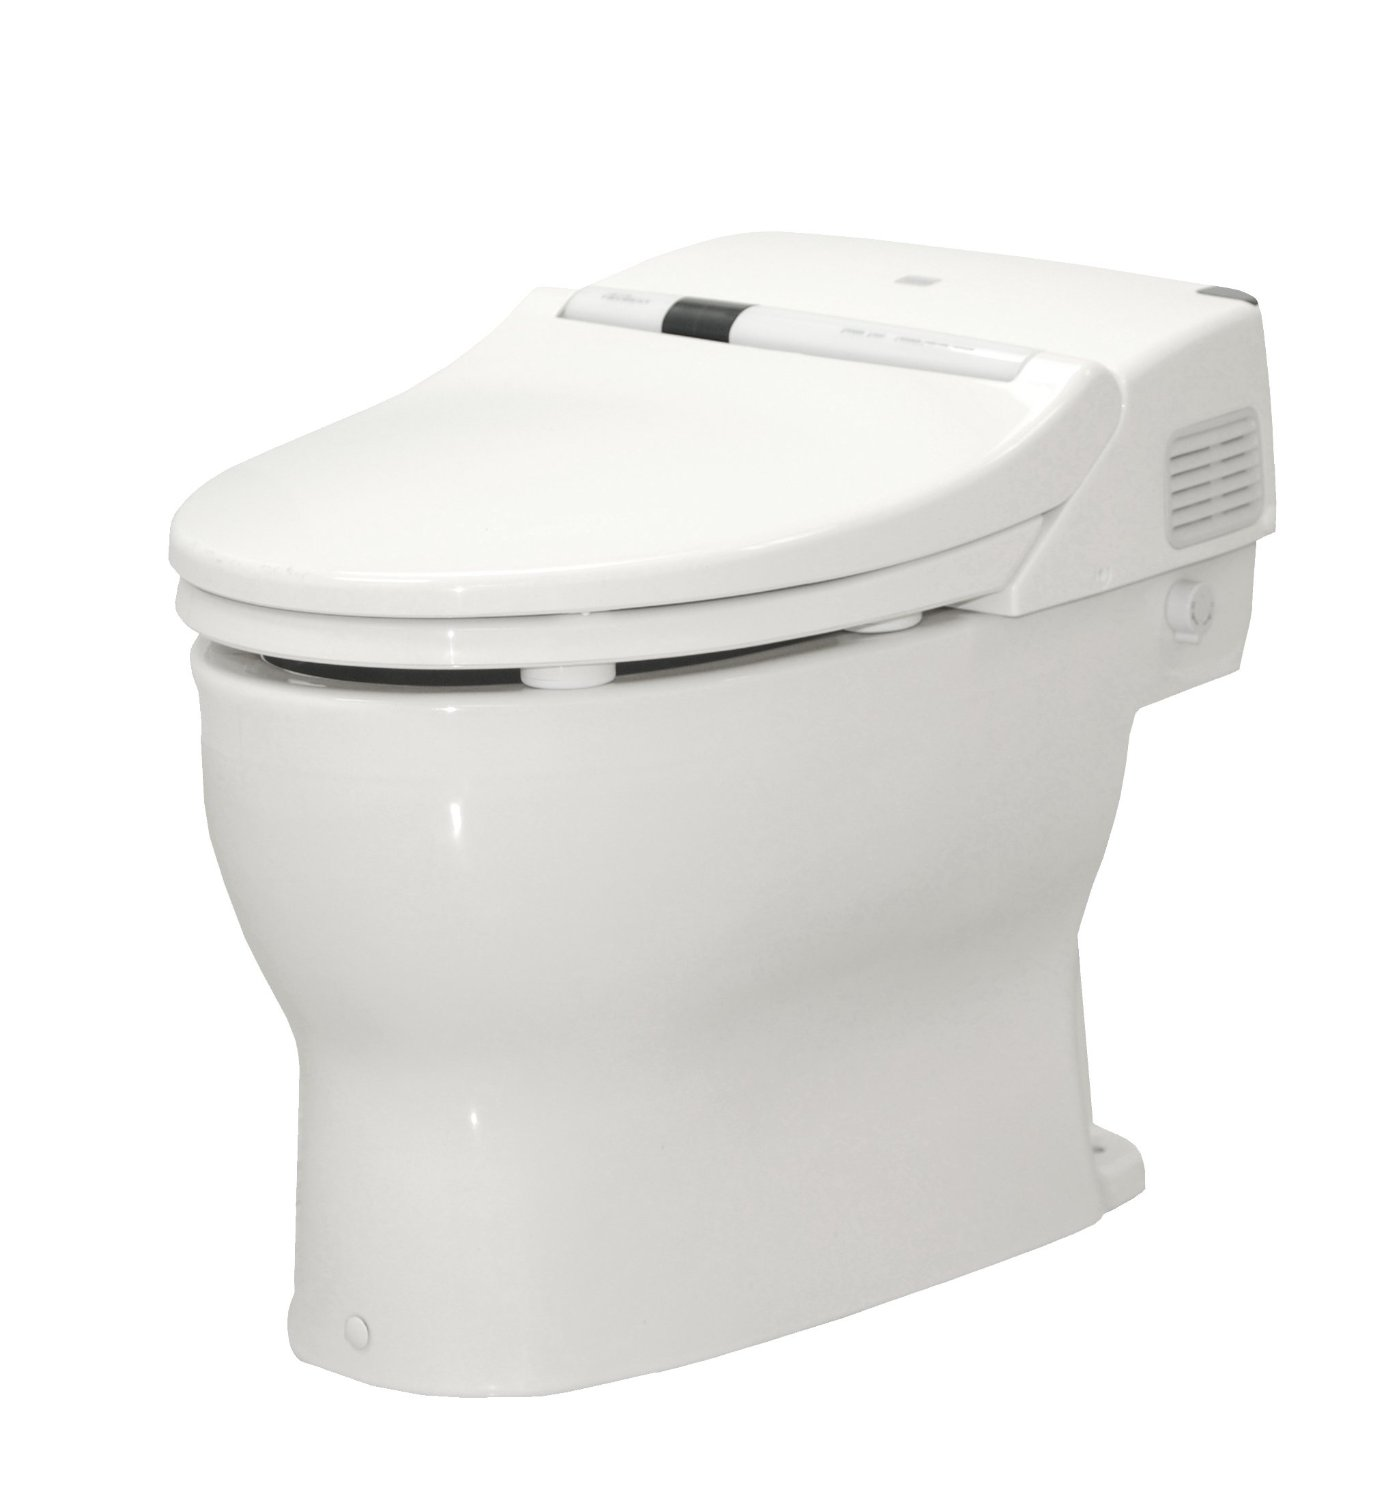 neorest 500h toilet review - Toto Bidet